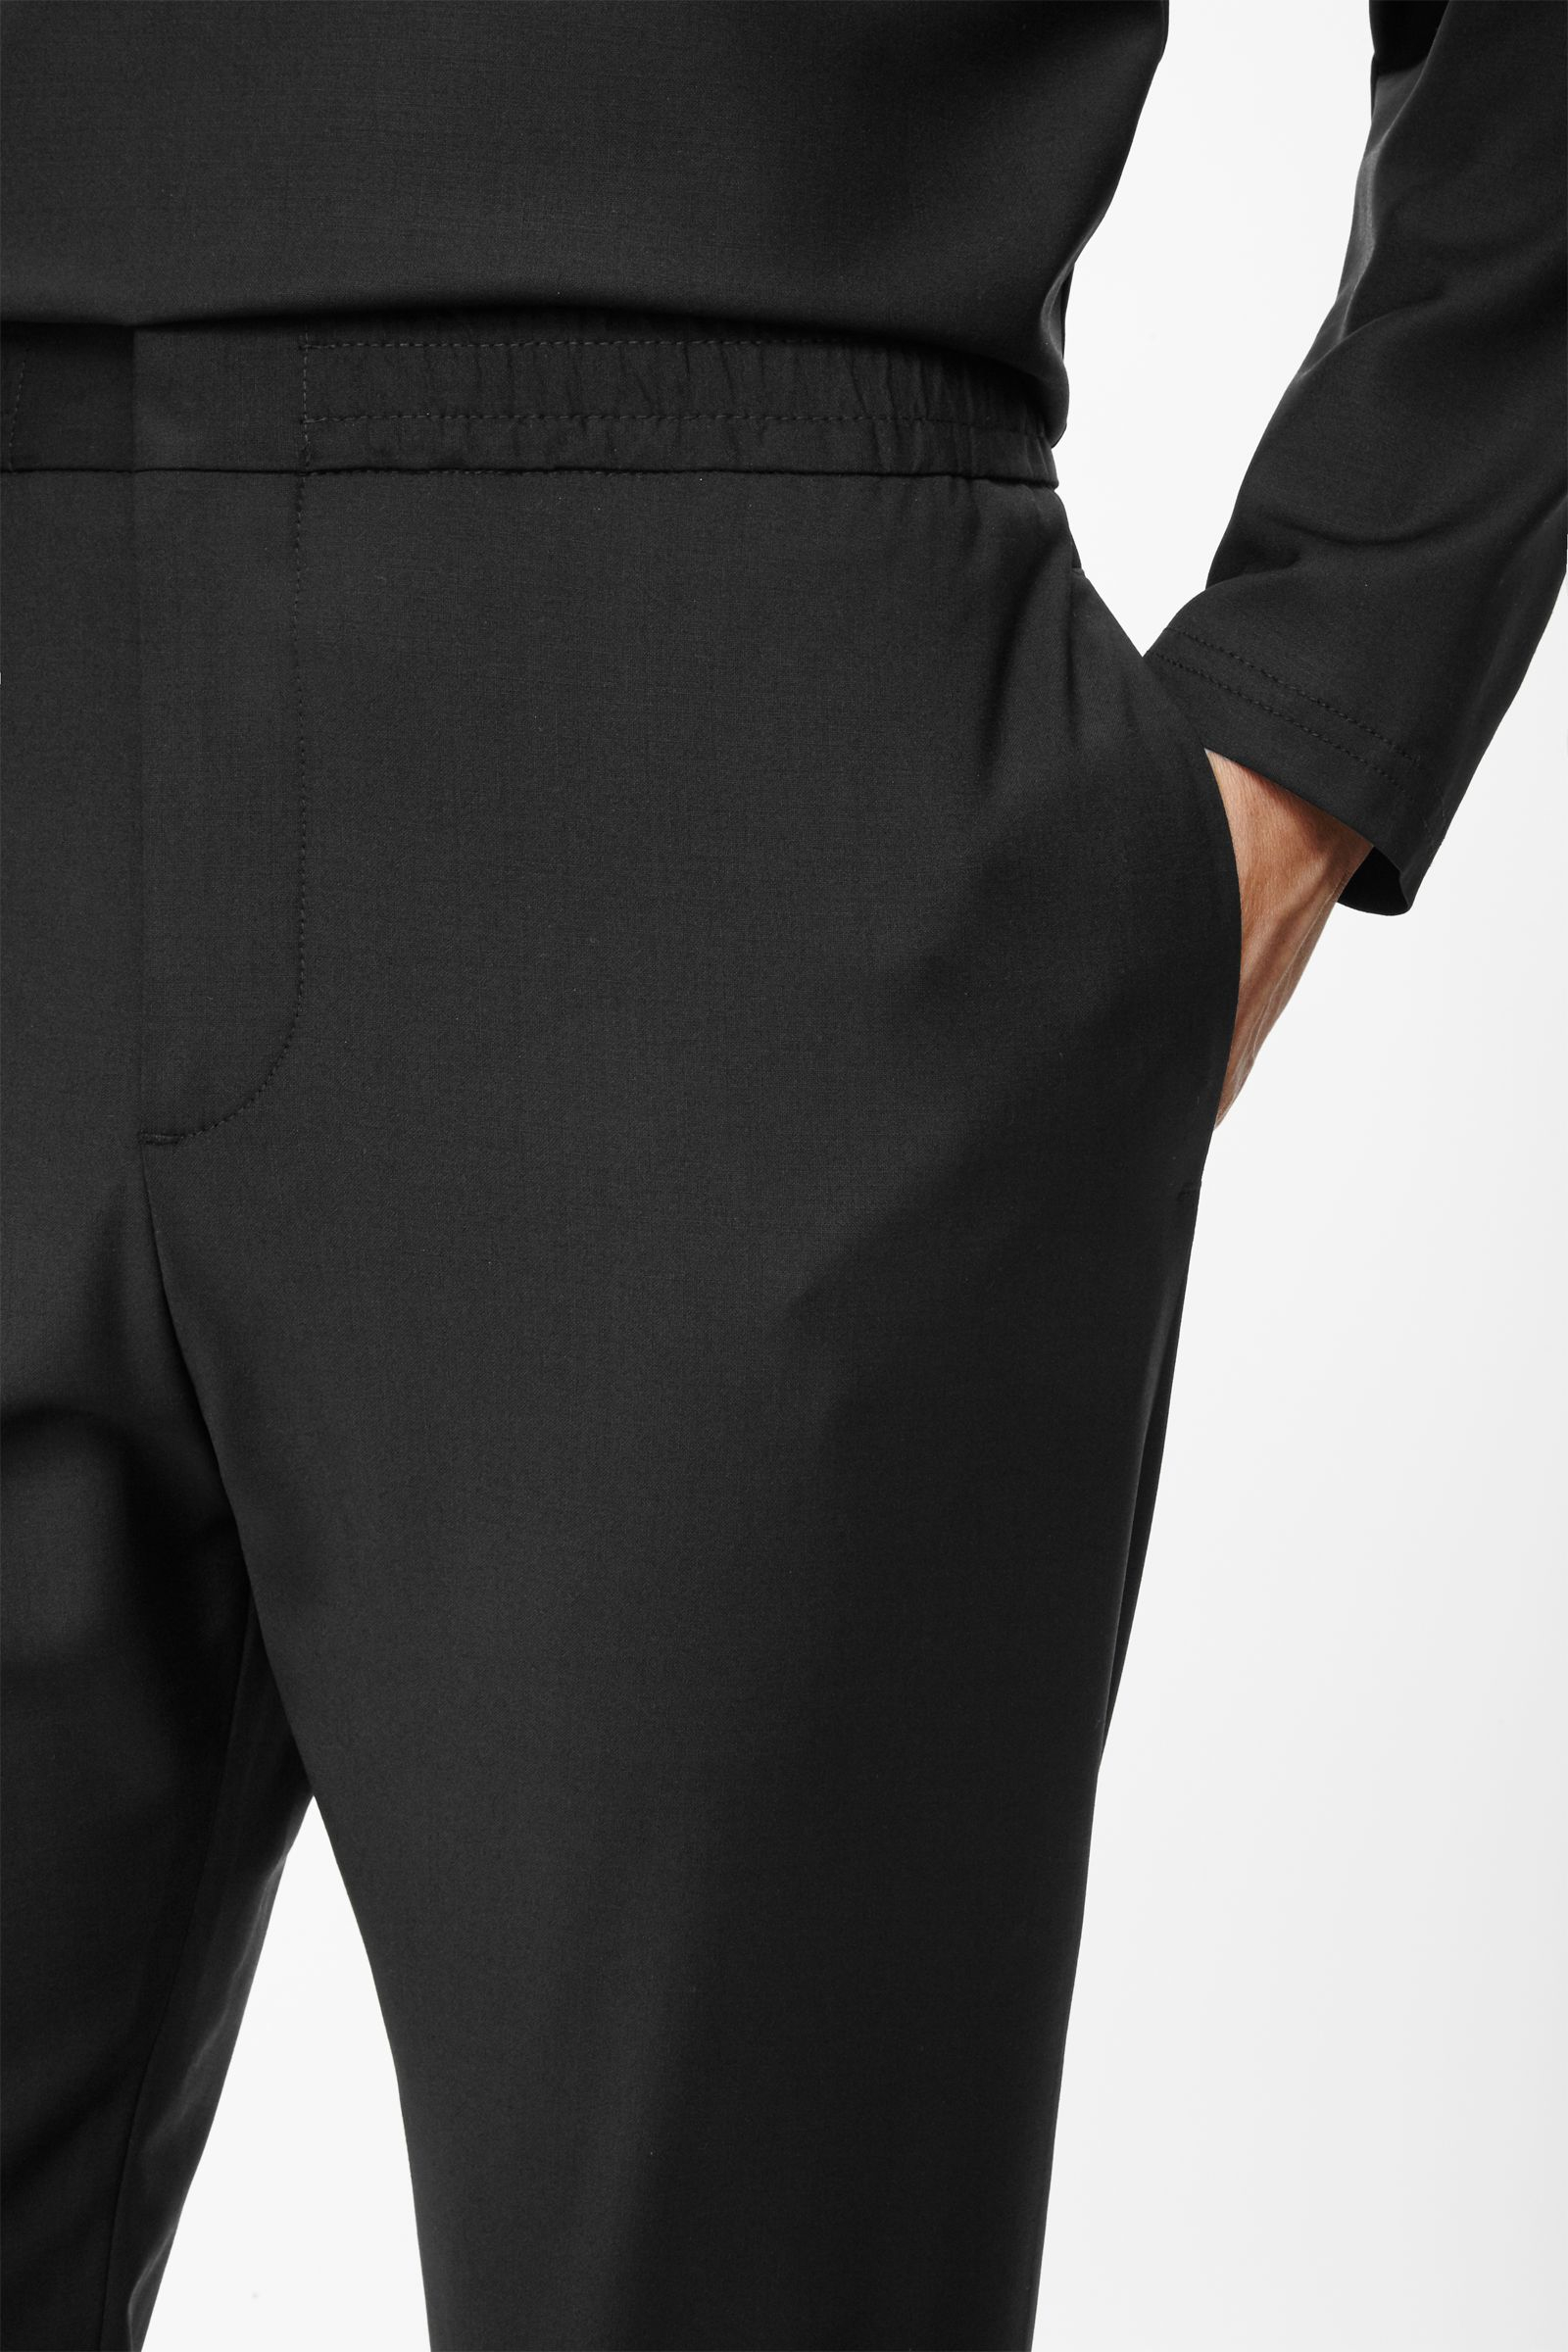 It's never been easier to look stylish and feel comfy with our womens elasticated waist trousers. Perfect for all seasons and any occasion you have our ladies elasticated trousers have been designed with practicality in mind.